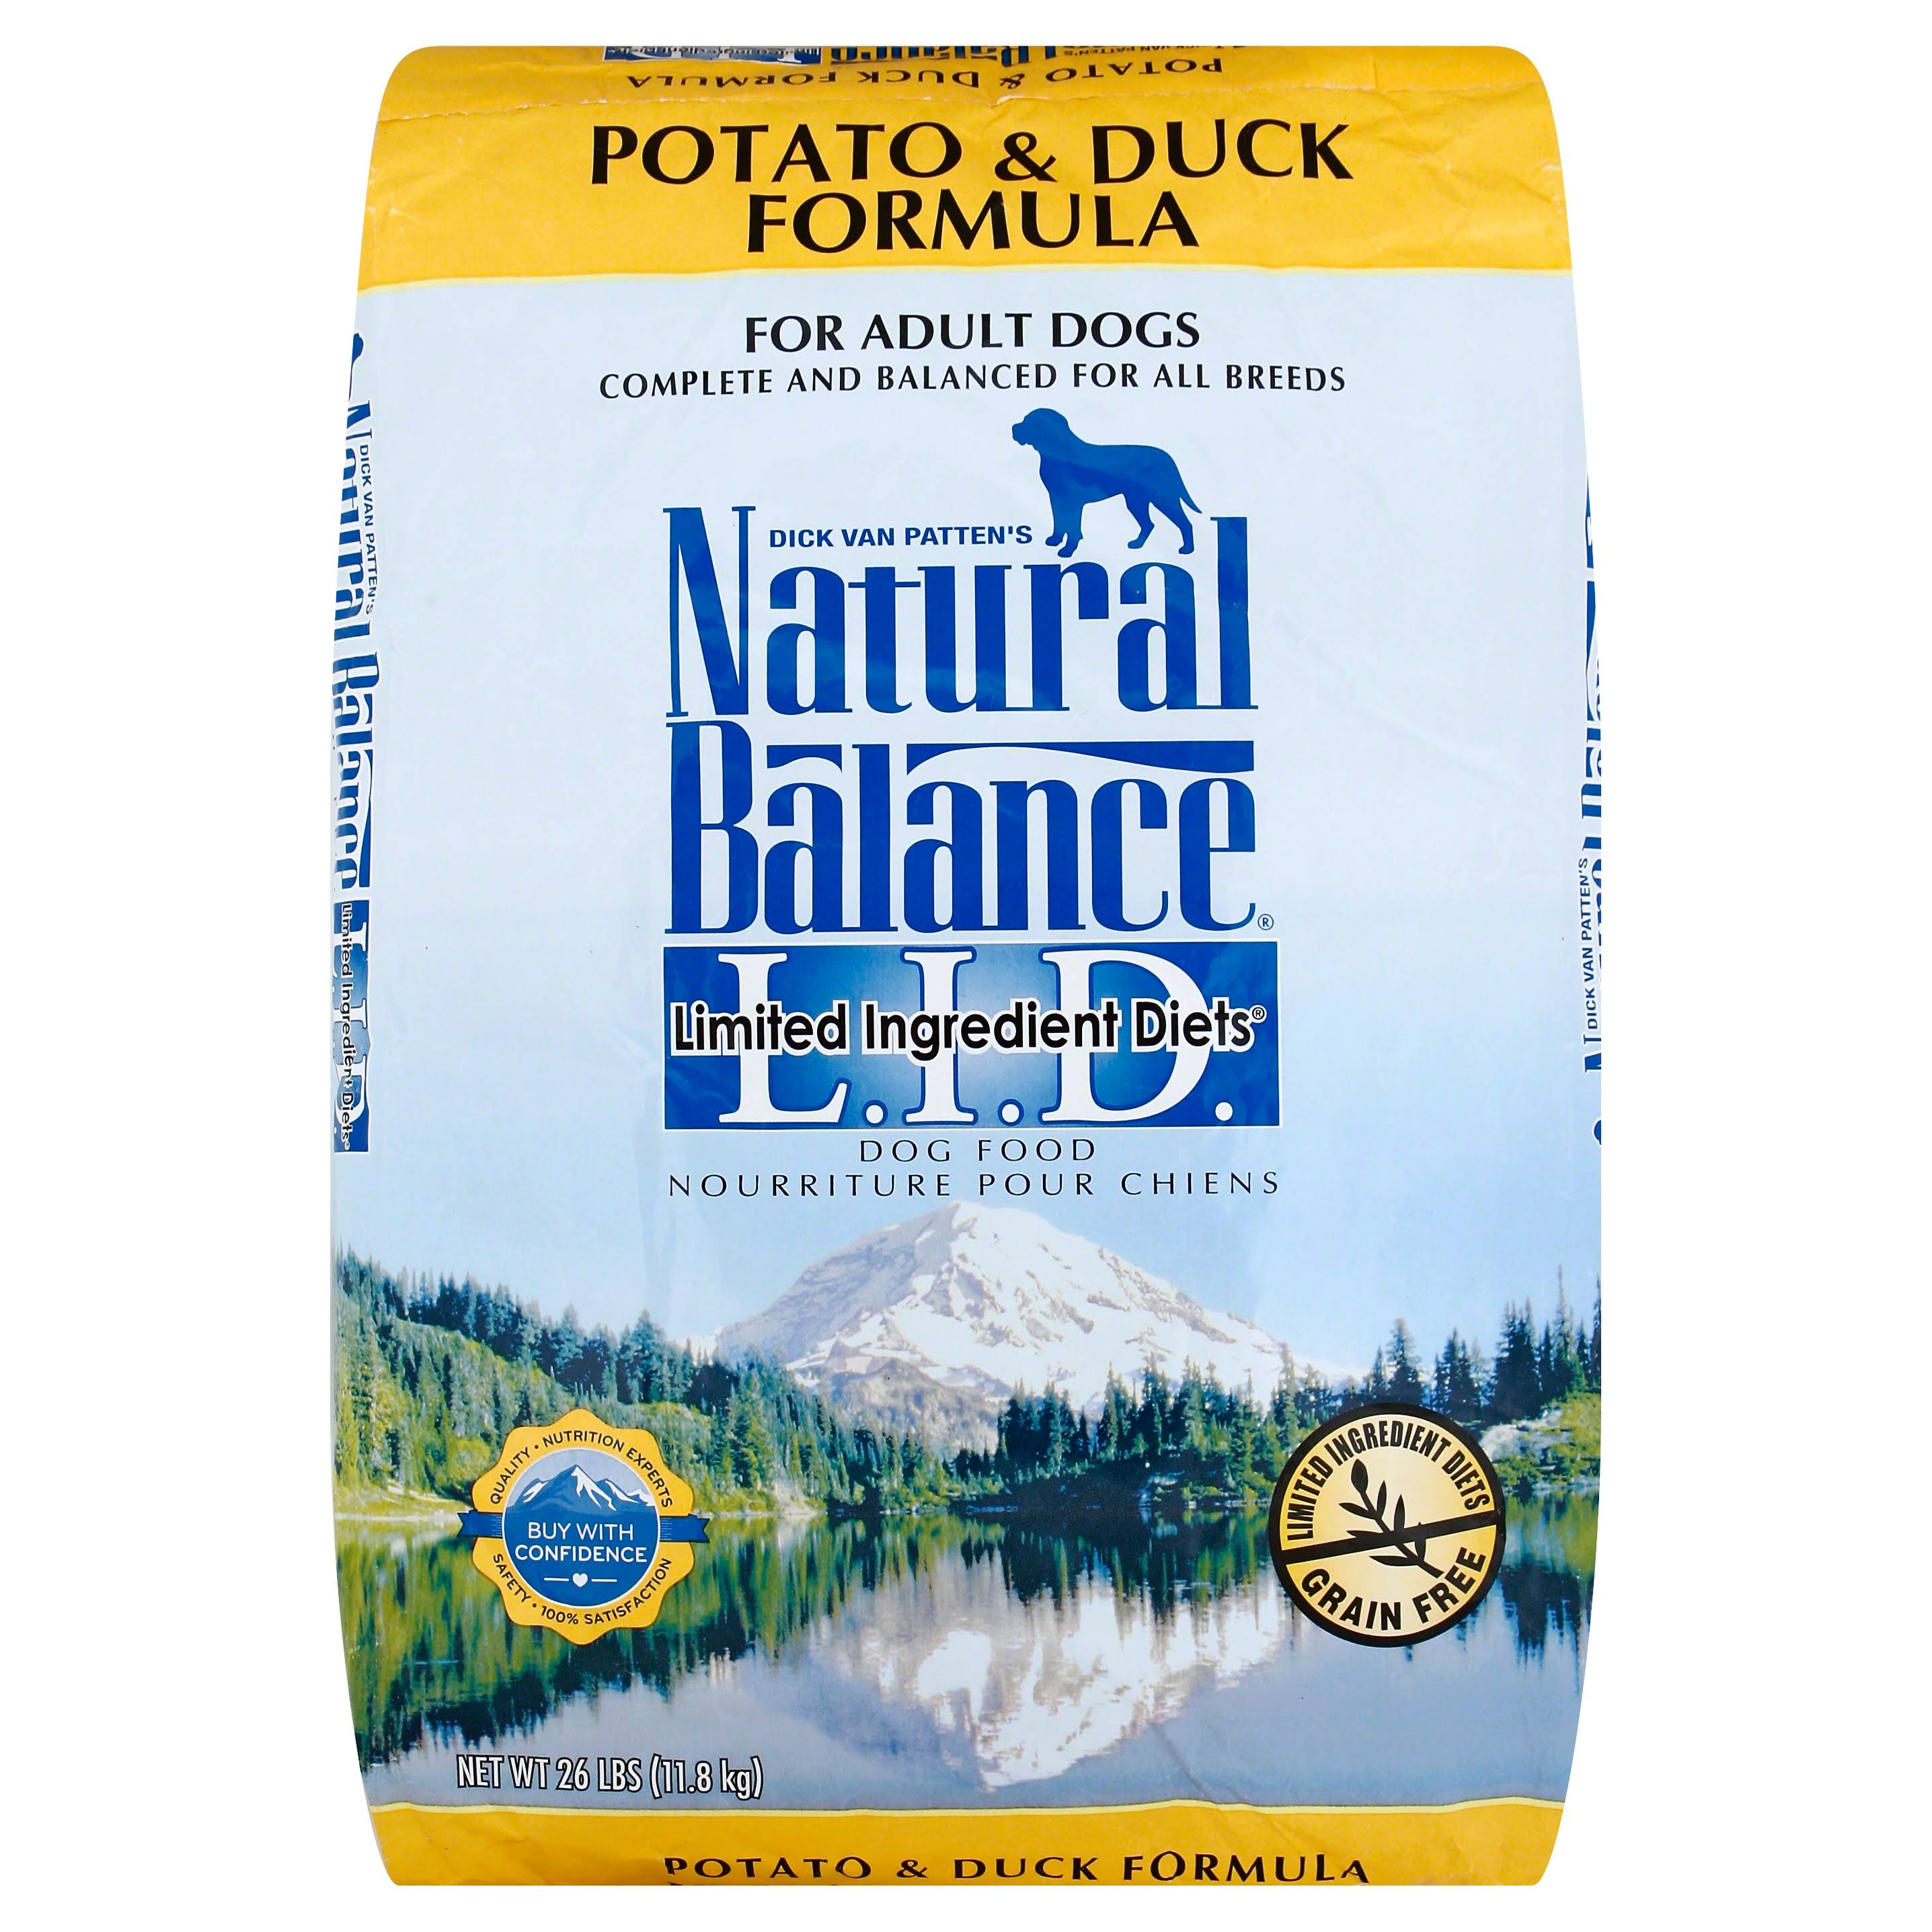 Dick Van Patten's Natural Balance LID Dry Dog Food - Potato & Duck, 26lb